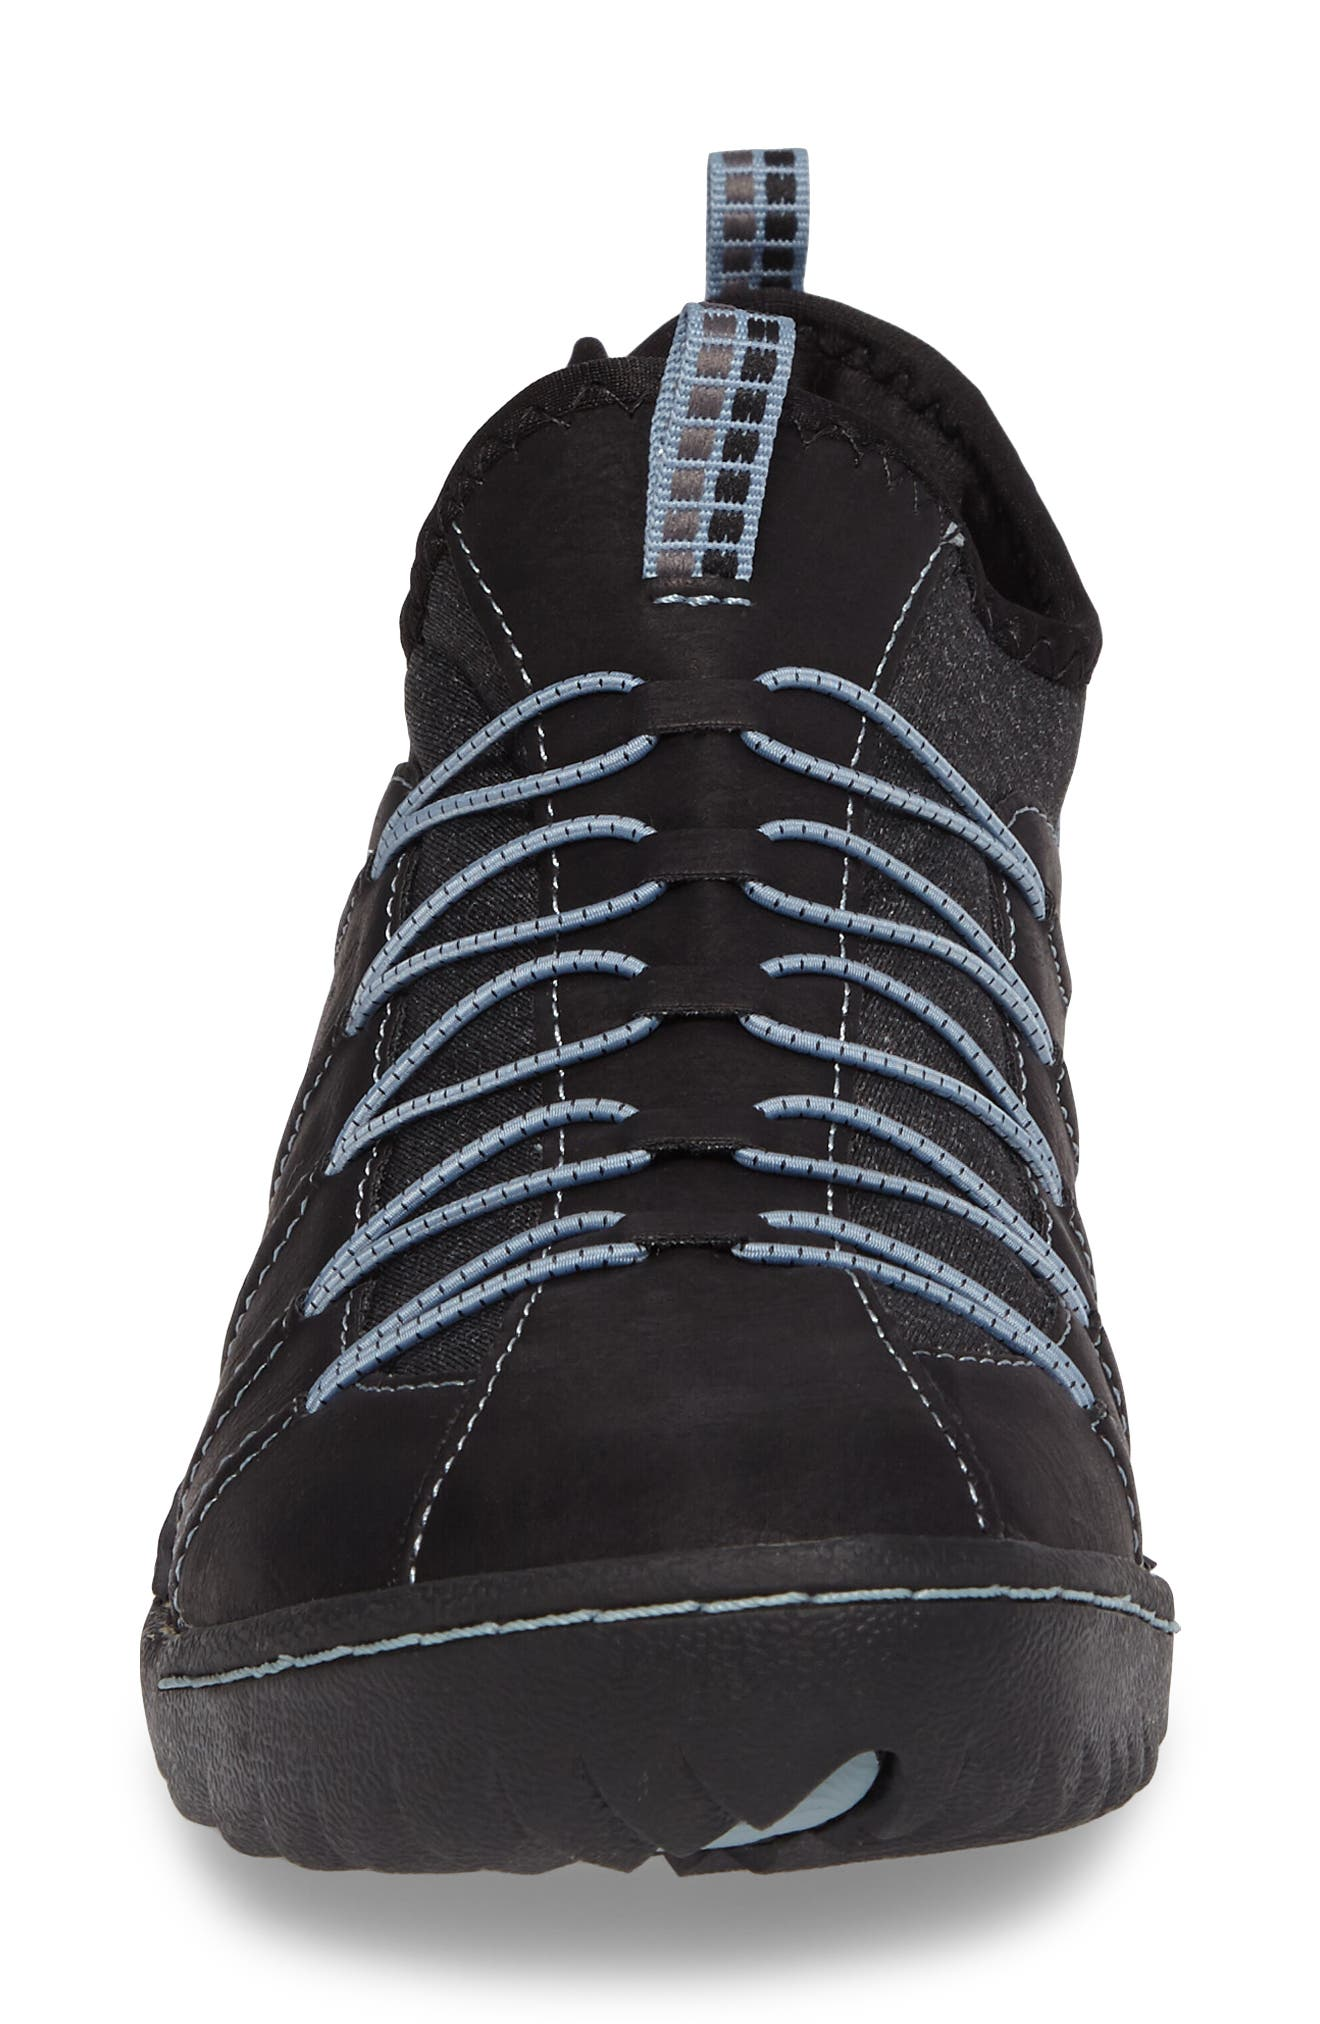 Spirit Sneaker,                             Alternate thumbnail 4, color,                             BLACK/ BLUE SMOKE LEATHER